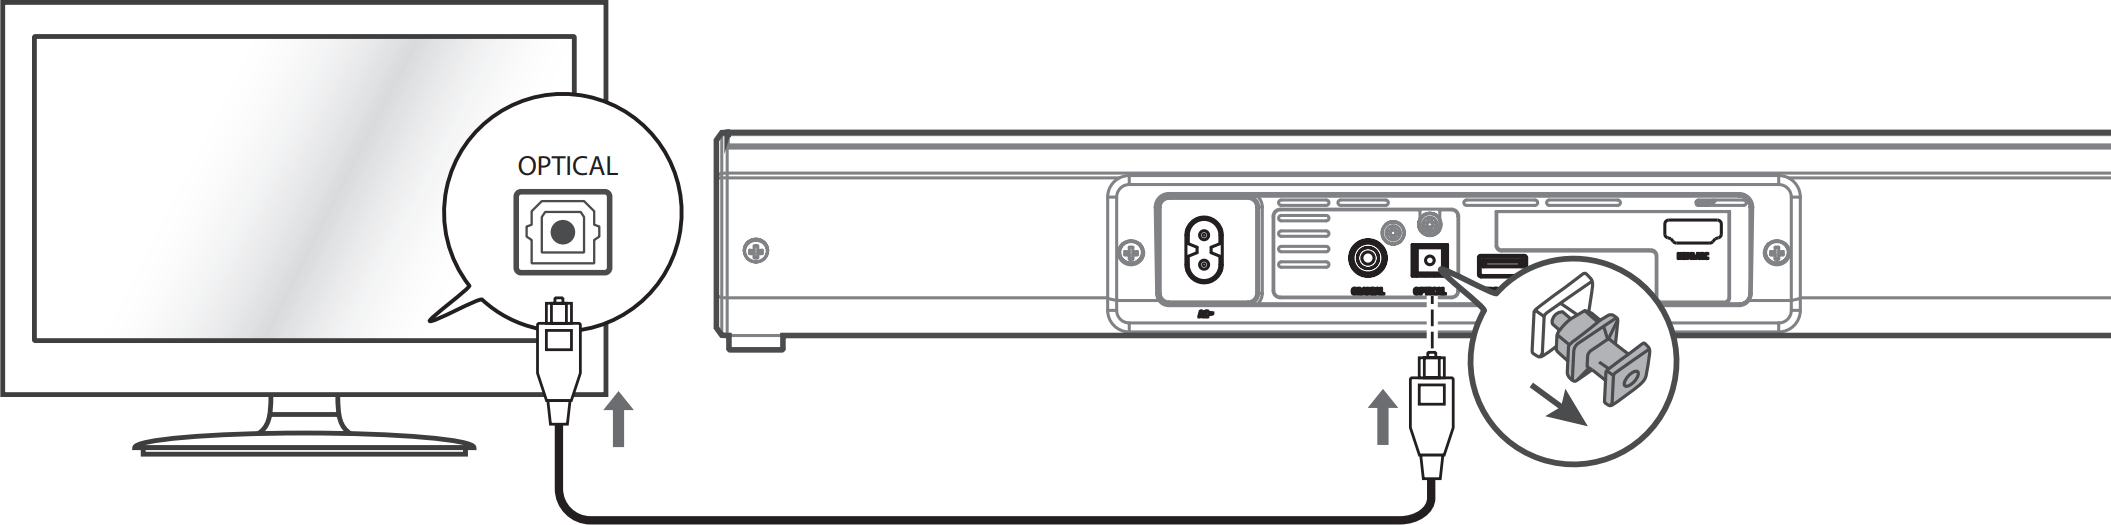 Diagram of connecting optical cable to television and soundbar